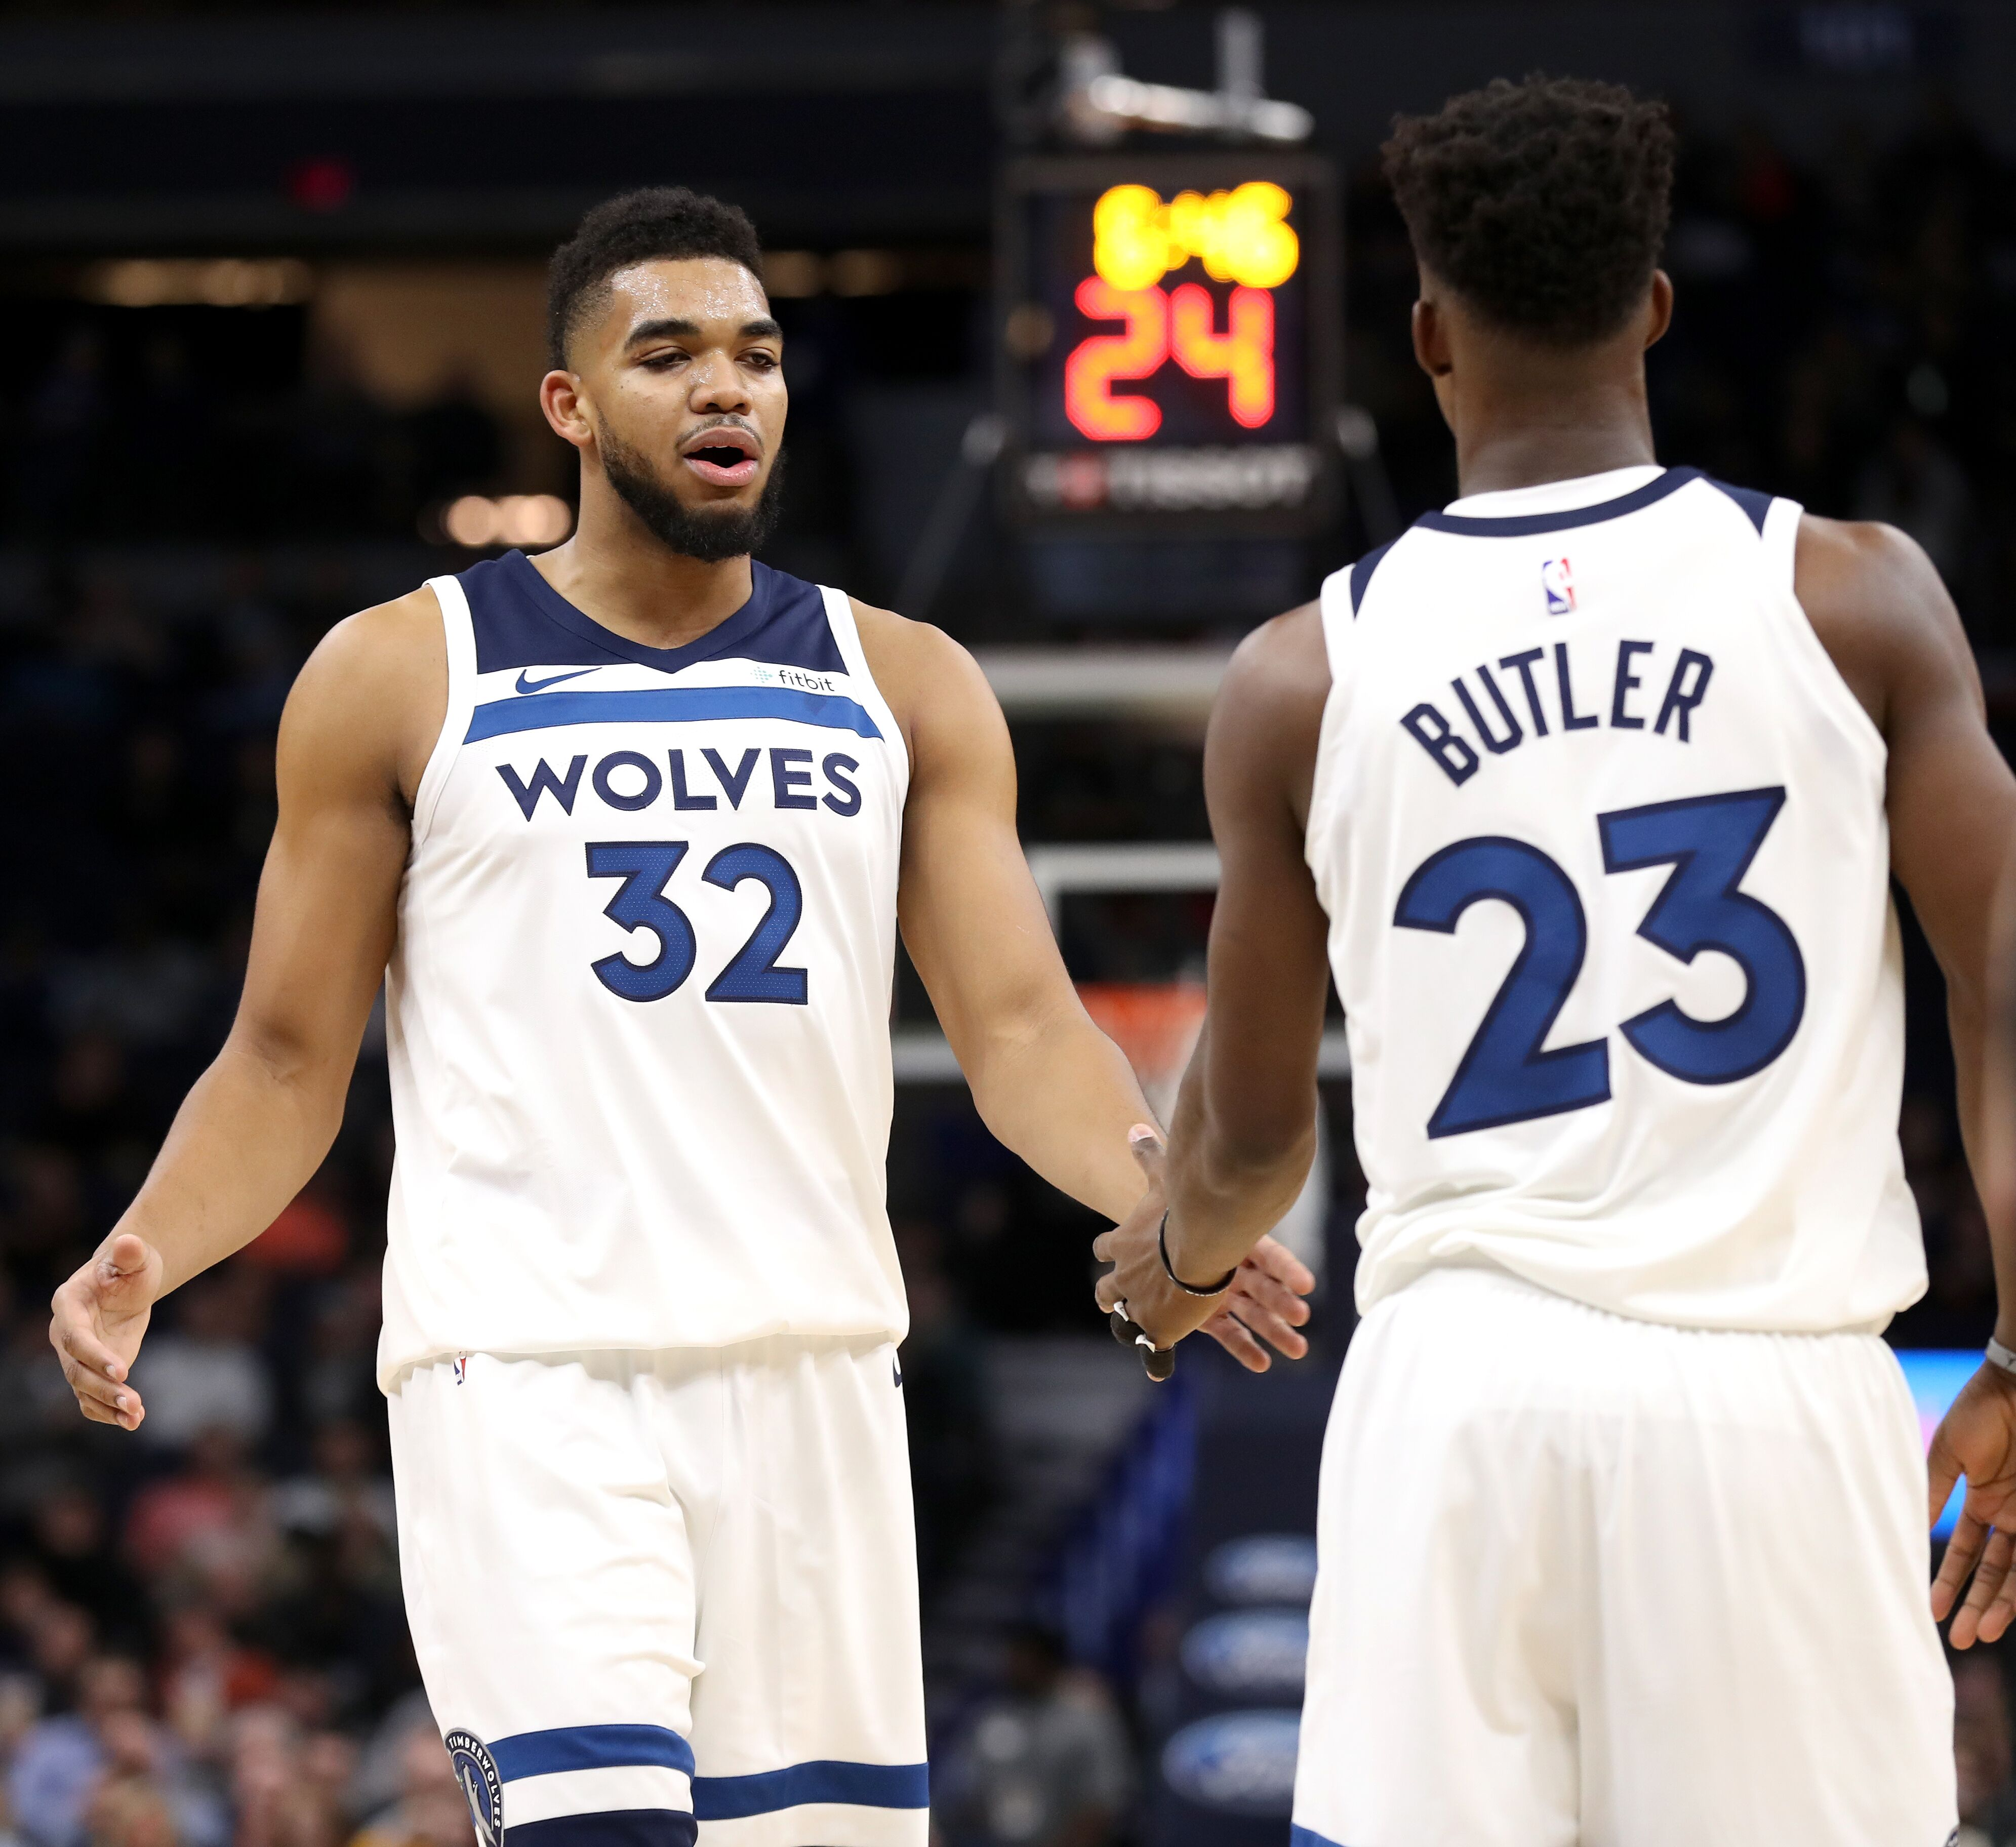 Timberwolves Rumors: Does KAT Have Bad Work Ethic?